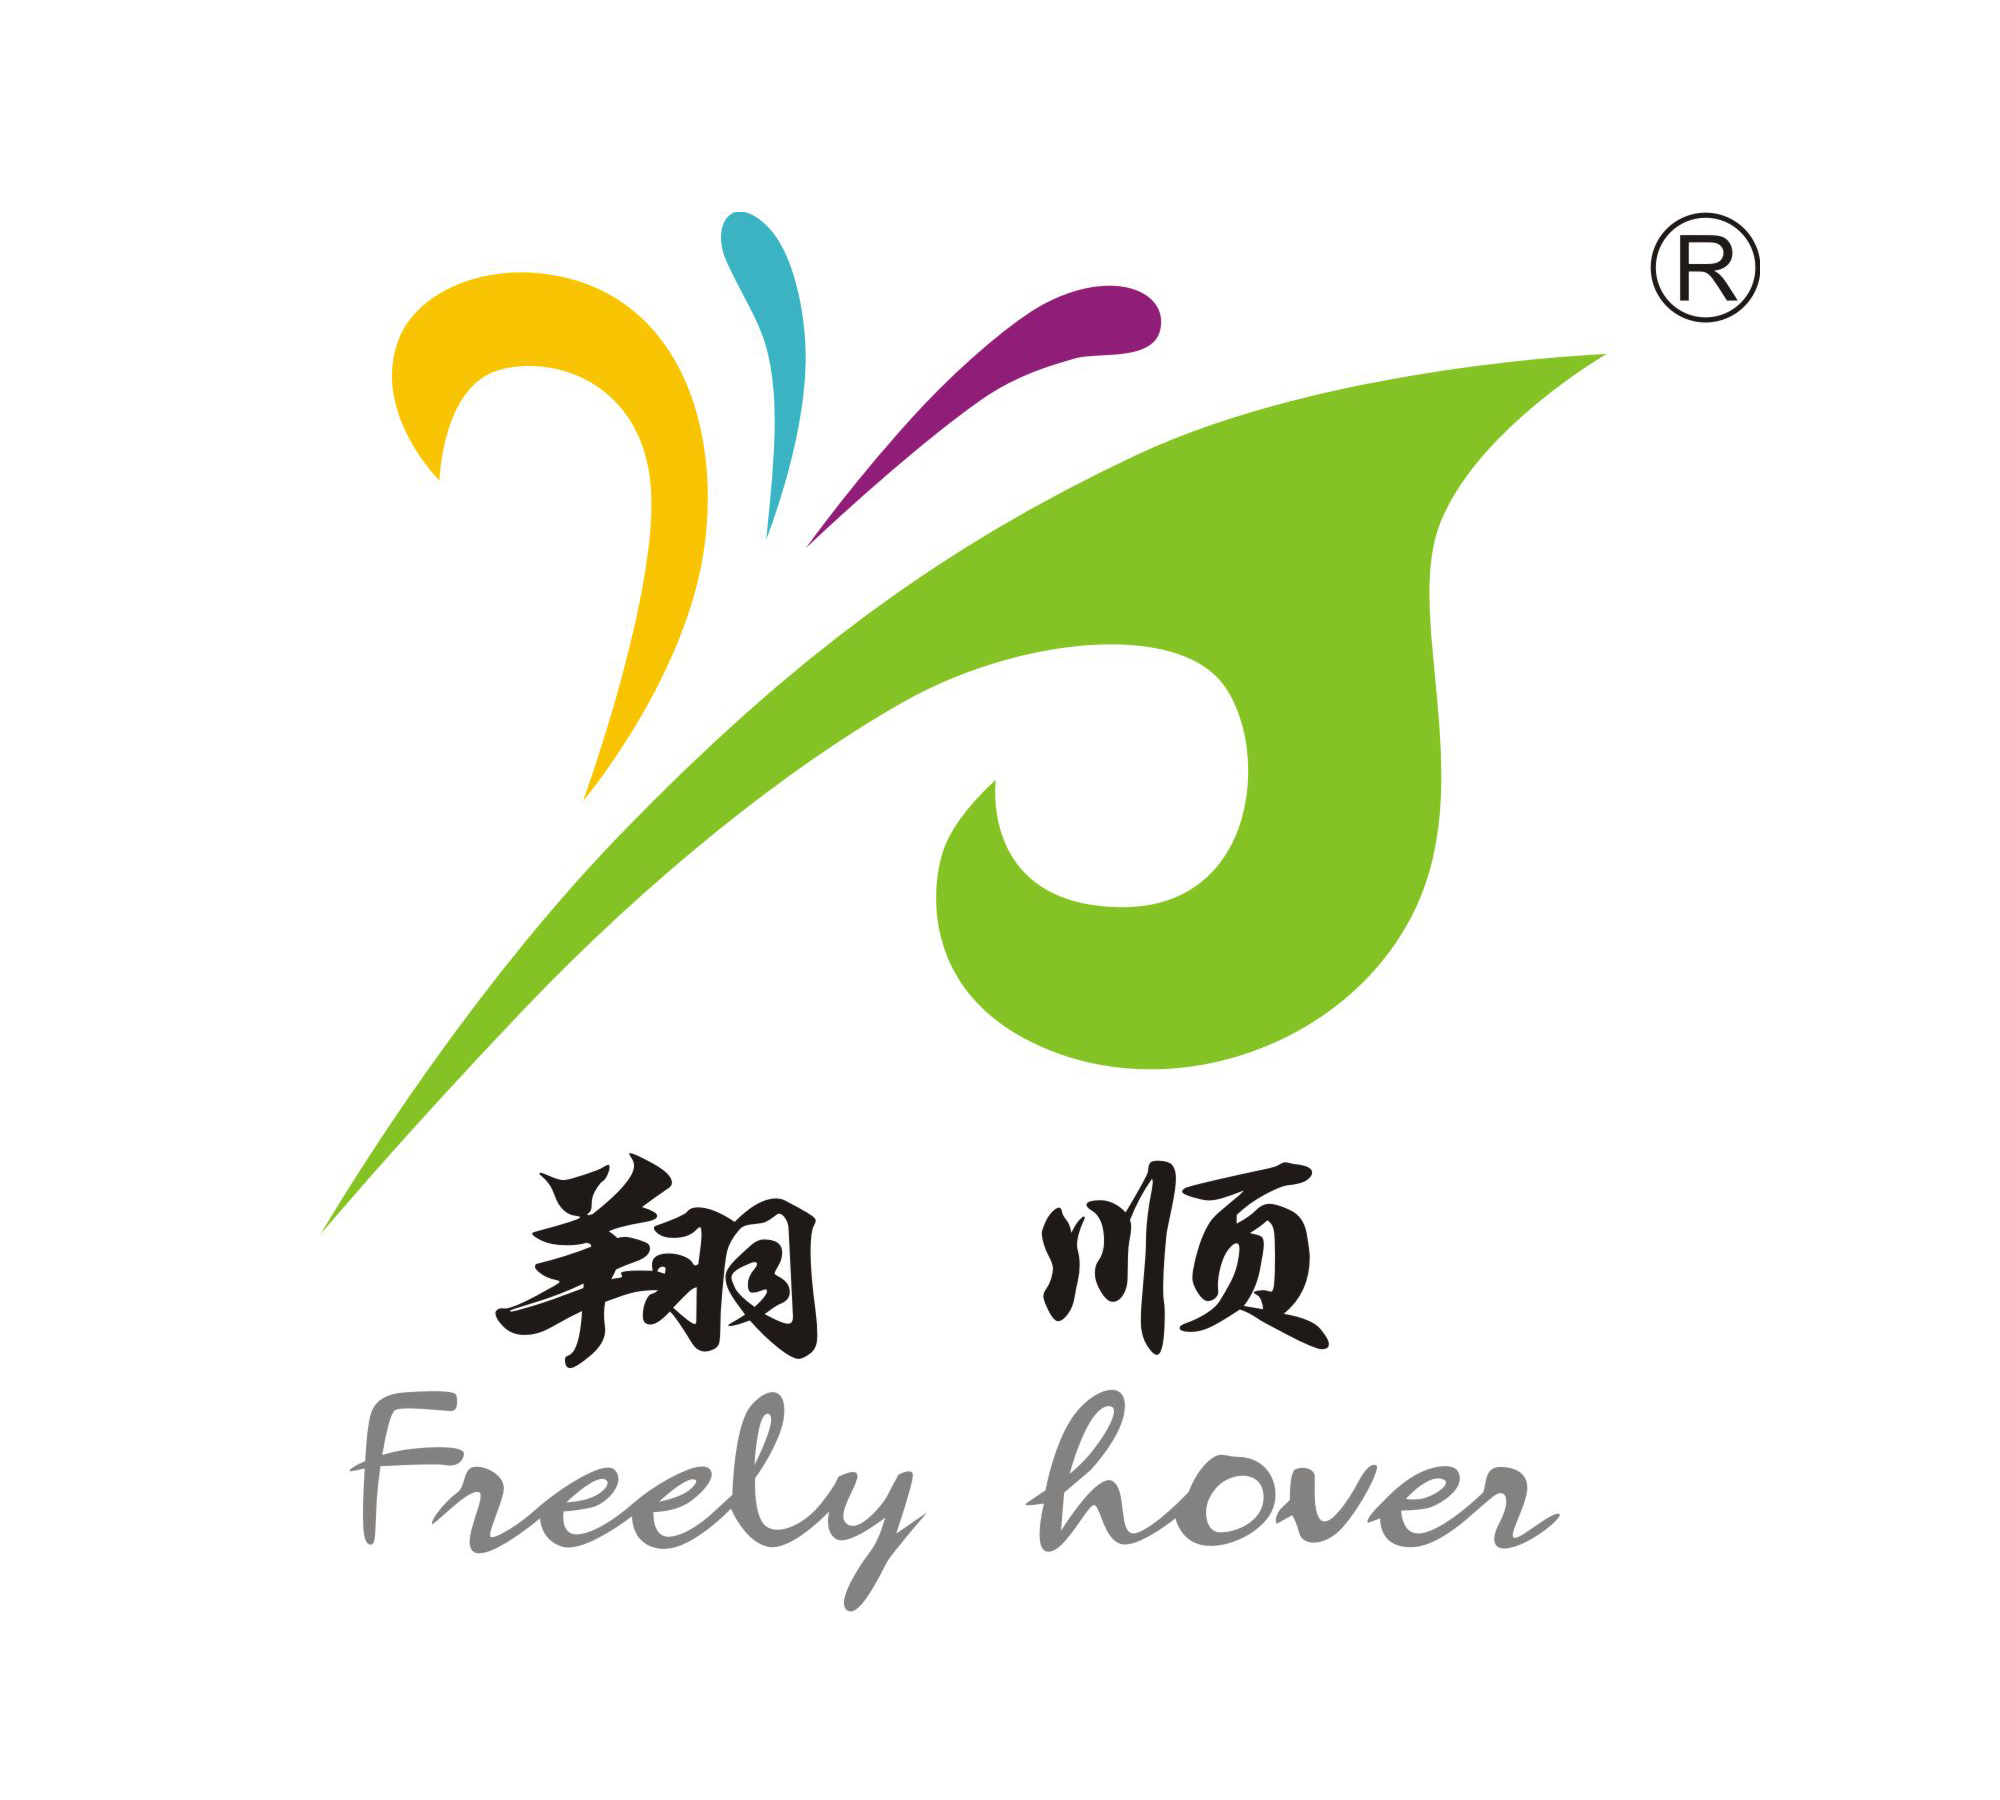 Guangdong Freely Hover Kitchen & Table Wares Co., Ltd